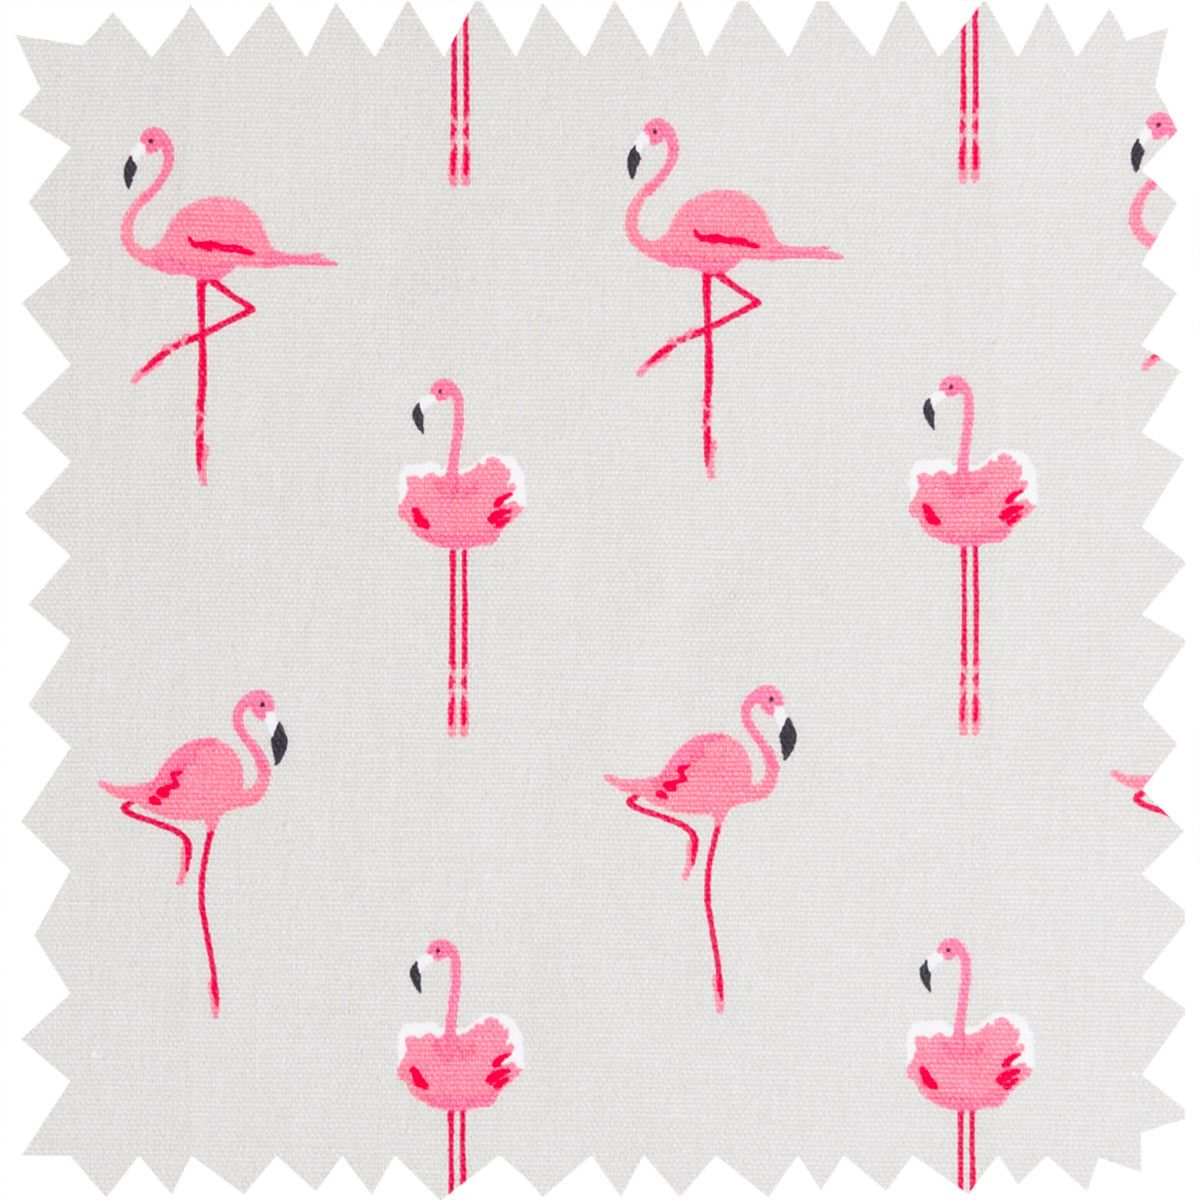 Küchentücher Flamingo Flamingos Fabric By The Metre Flamingo Patterns Flamingo